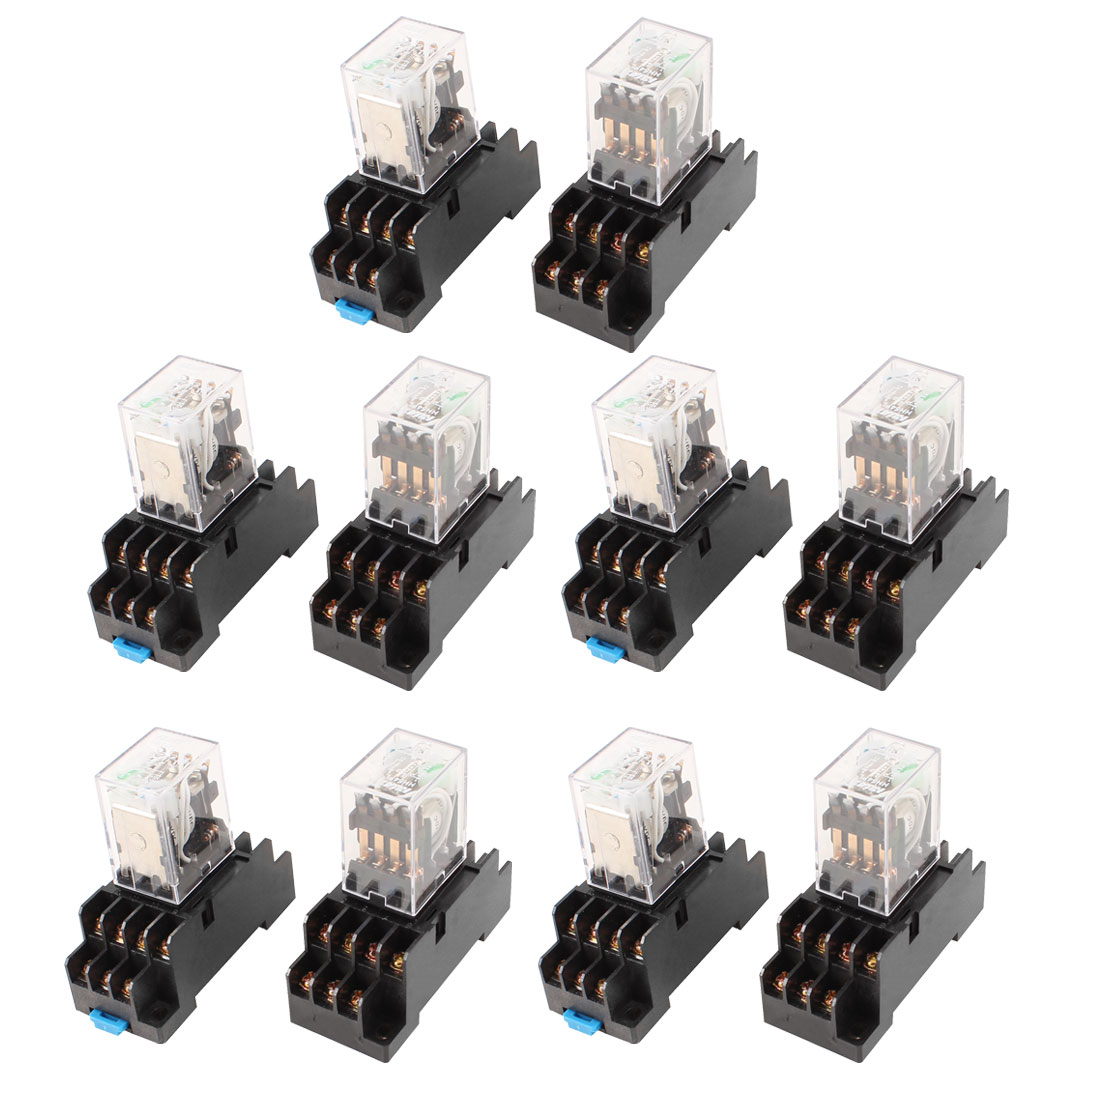 10Pcs DC 12V Coil 4PDT 14 Pin Green LED General Purpose Power Relay w Socket Base